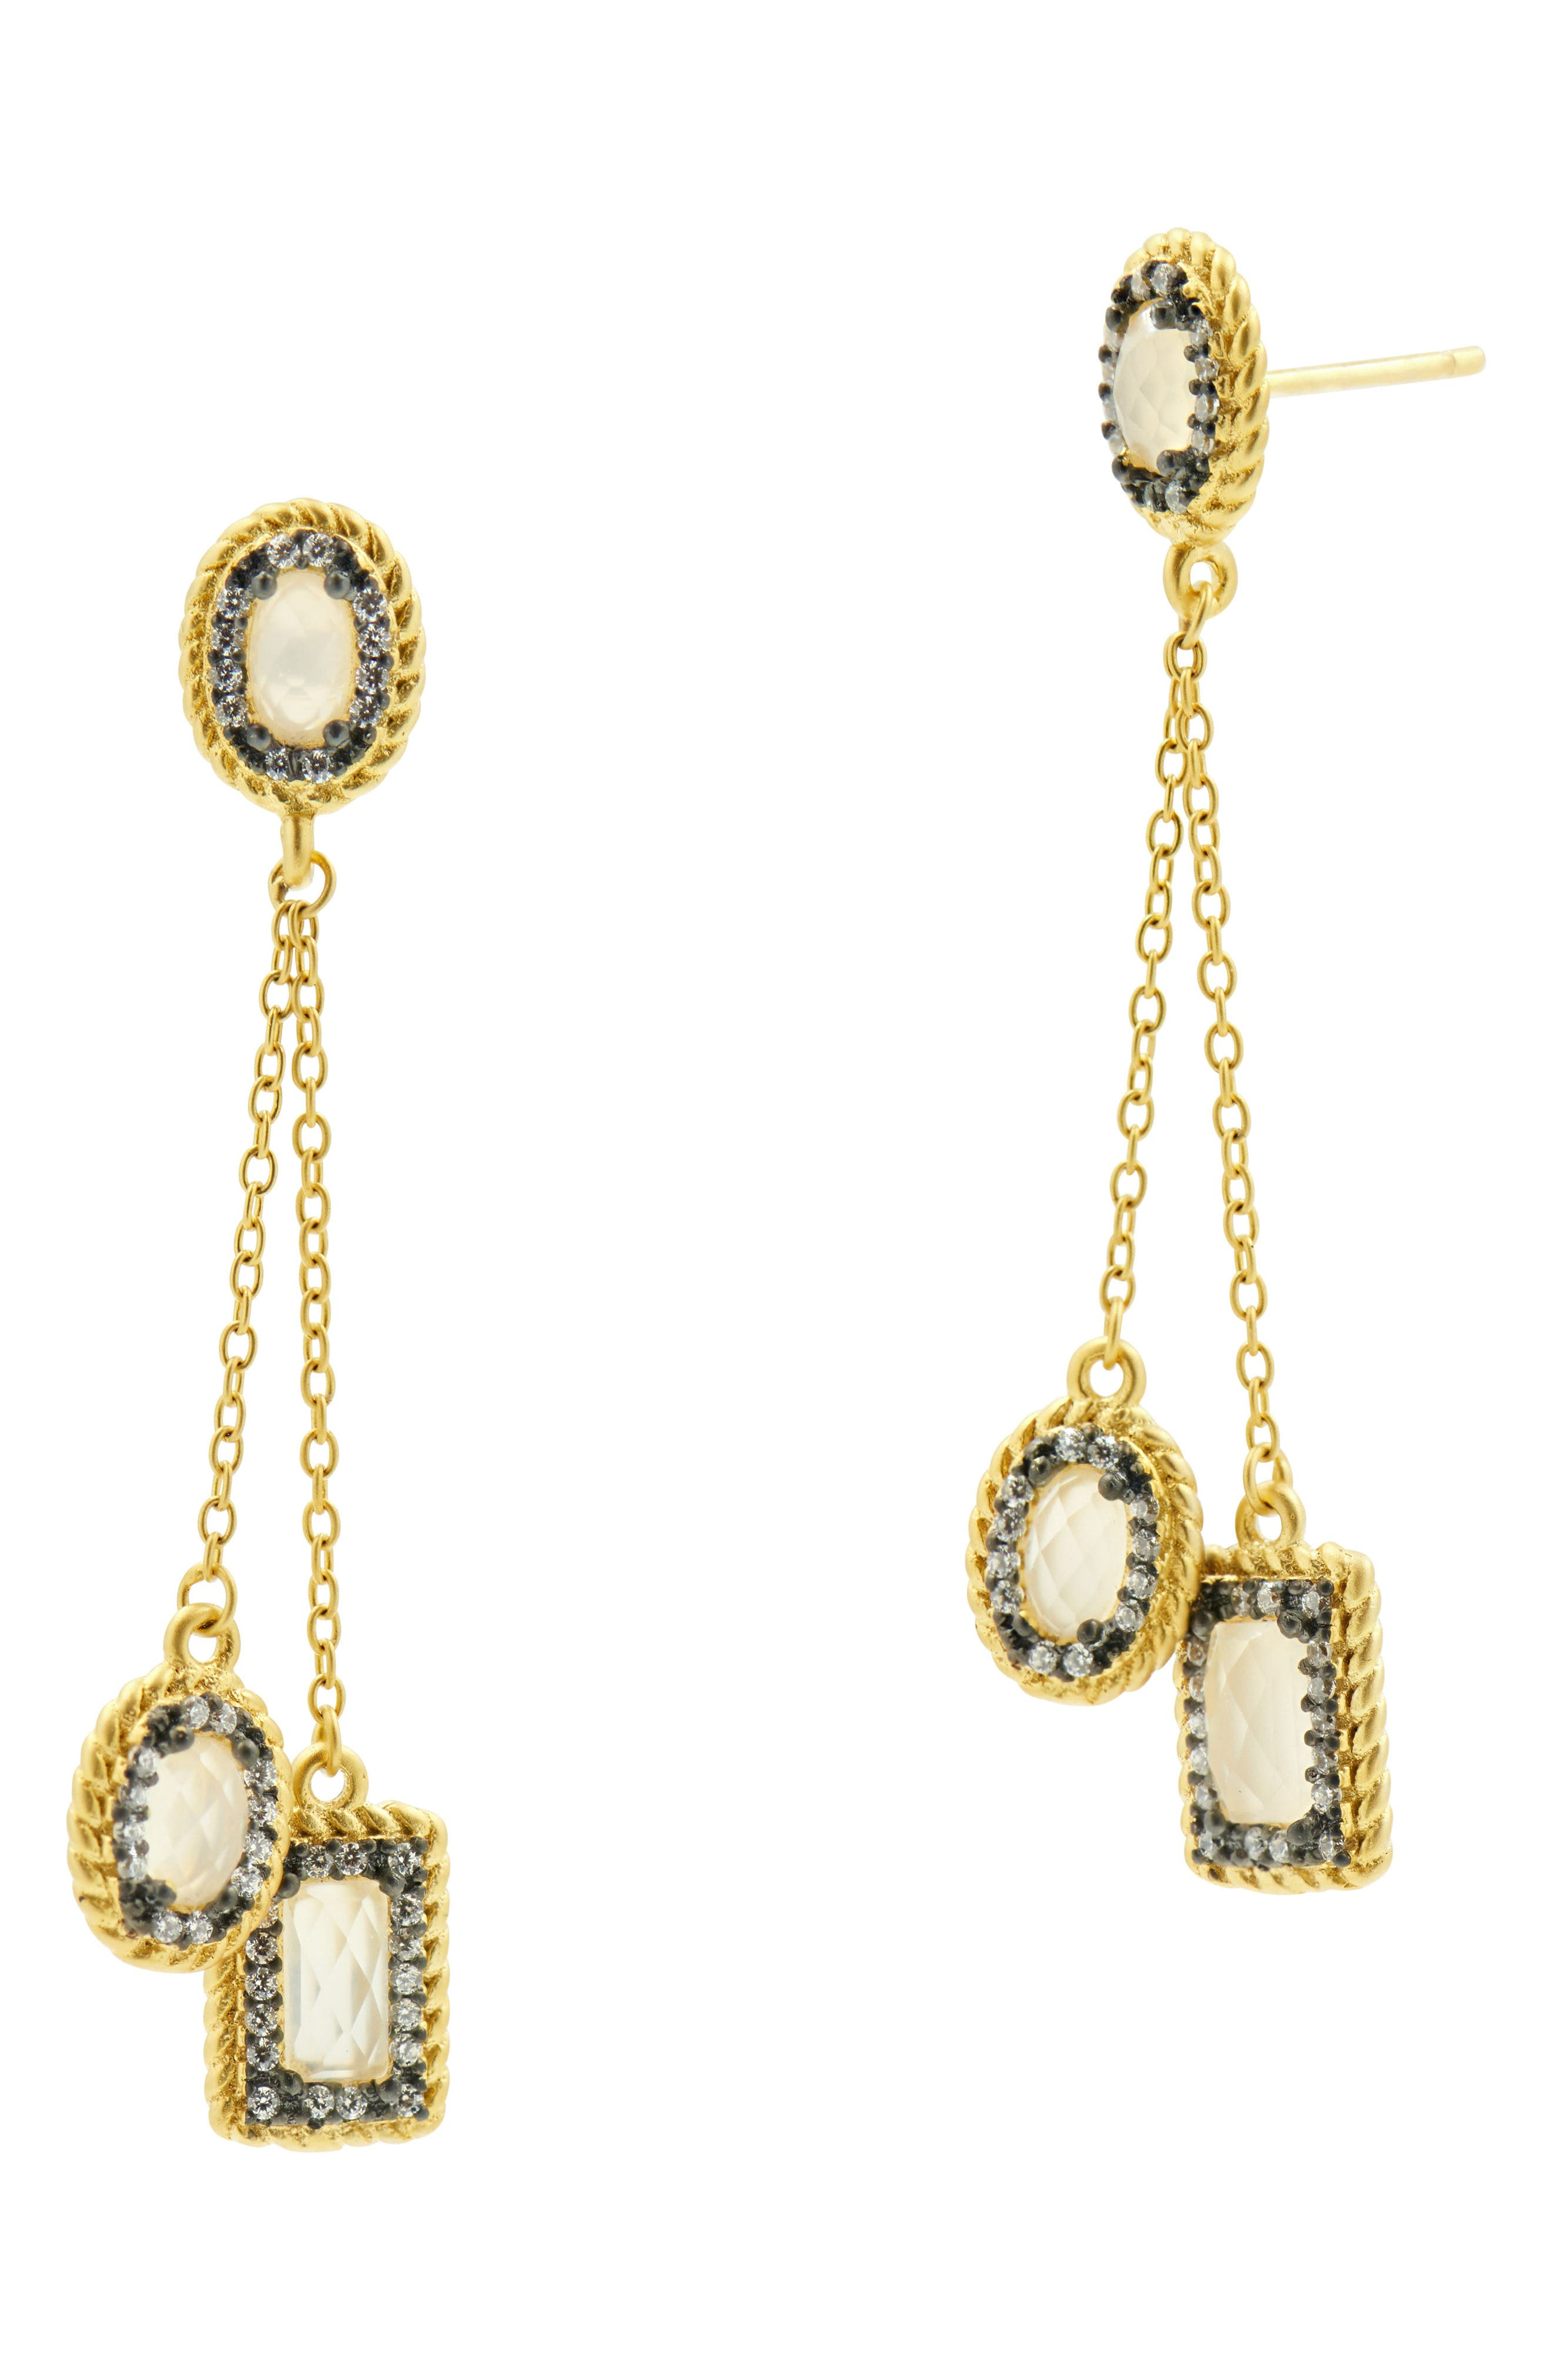 Chain Drop Earrings,                         Main,                         color, Black/ Gold